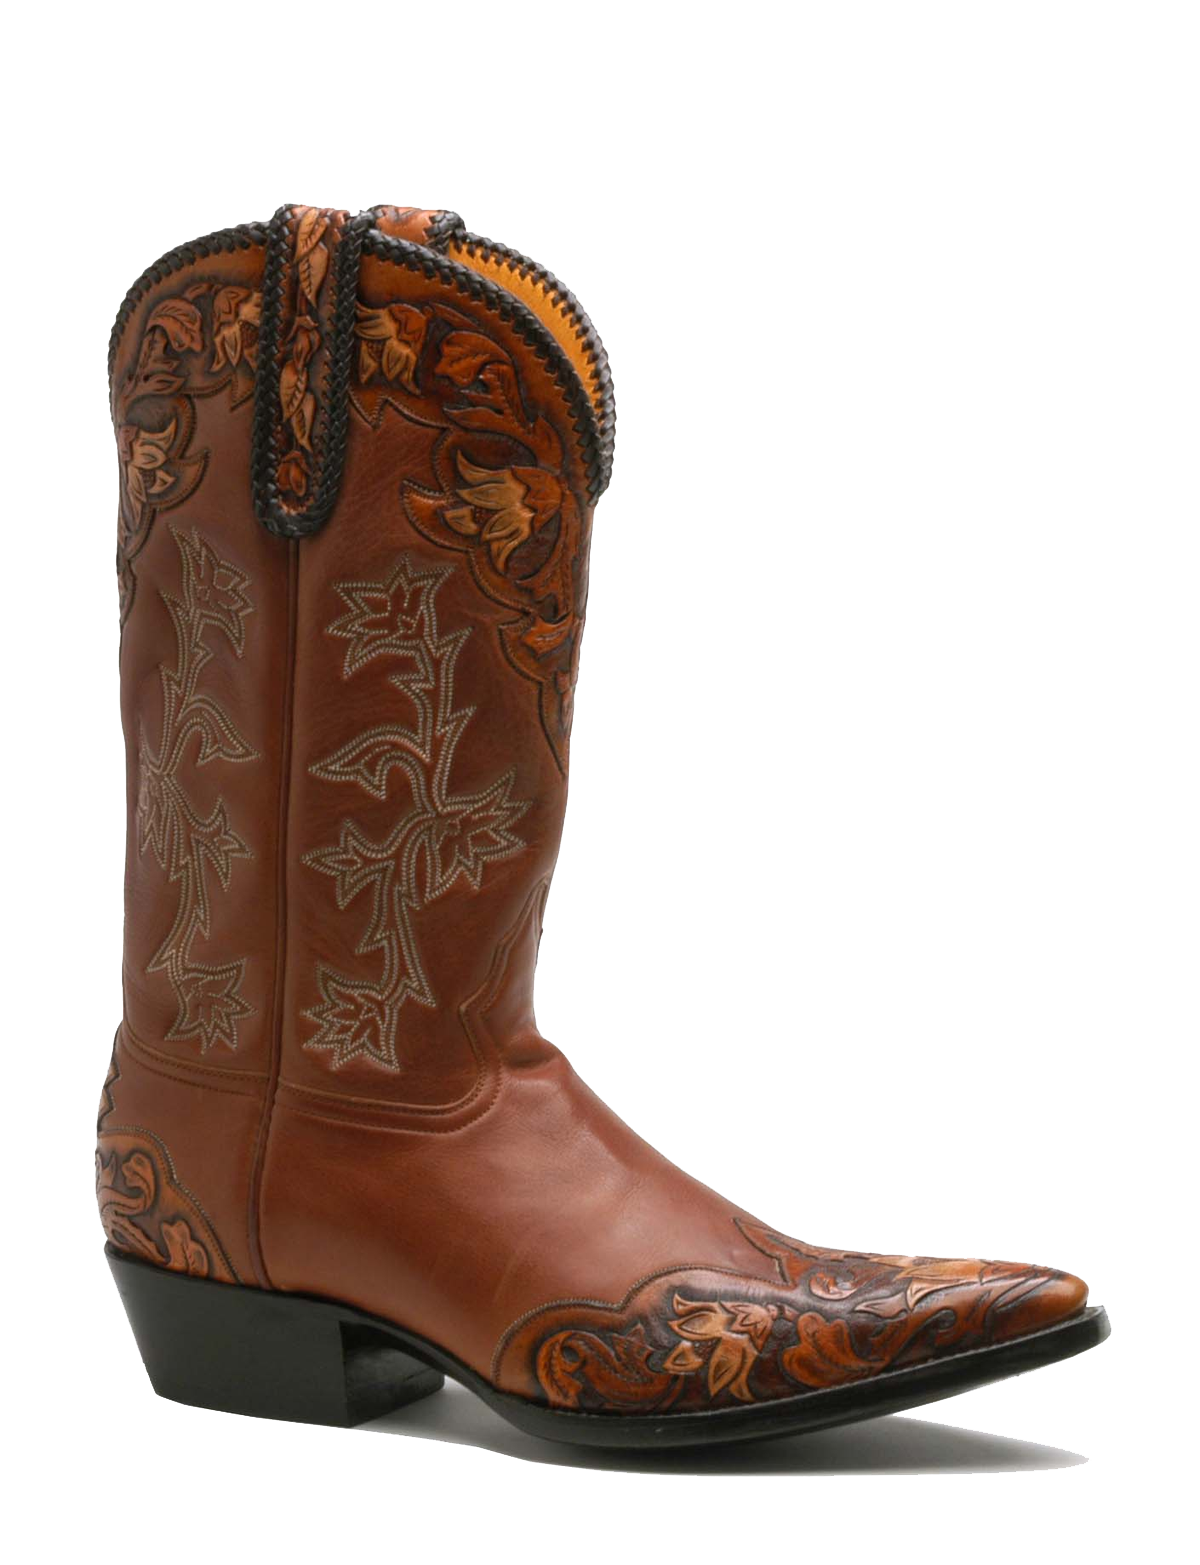 Download Boot PNG Image.